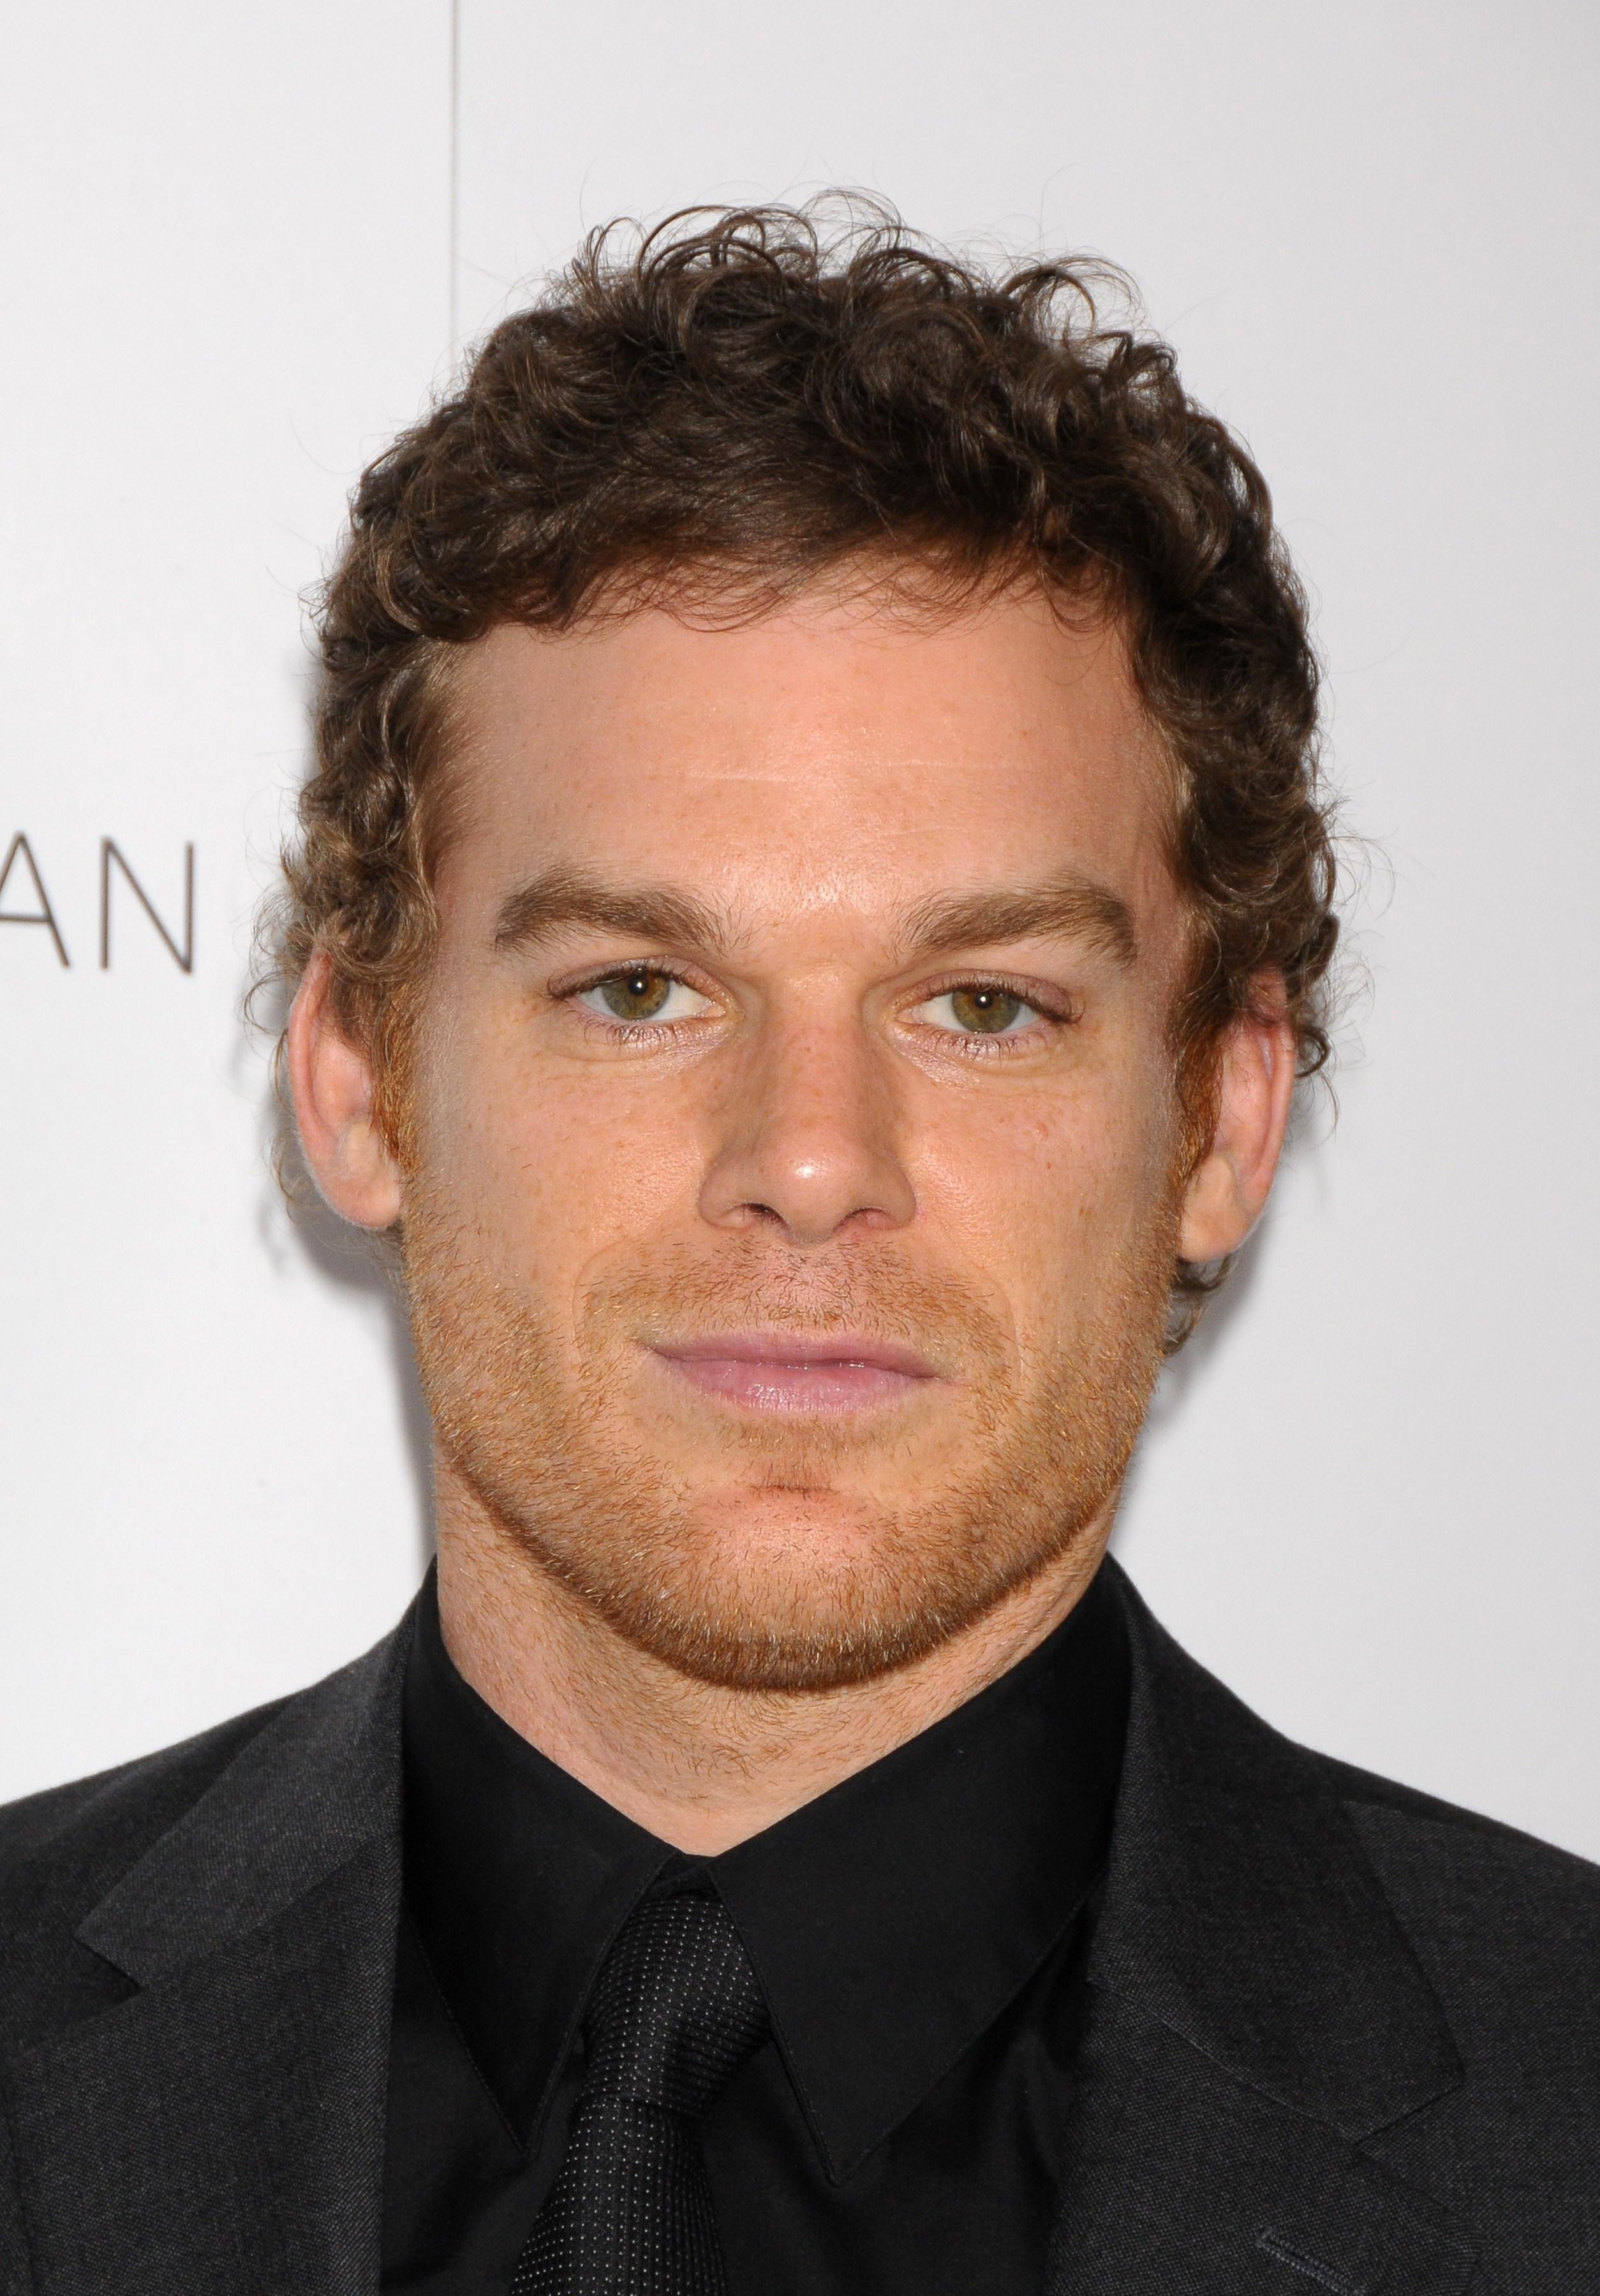 Michael C Hall | Known people - famous people news and ...